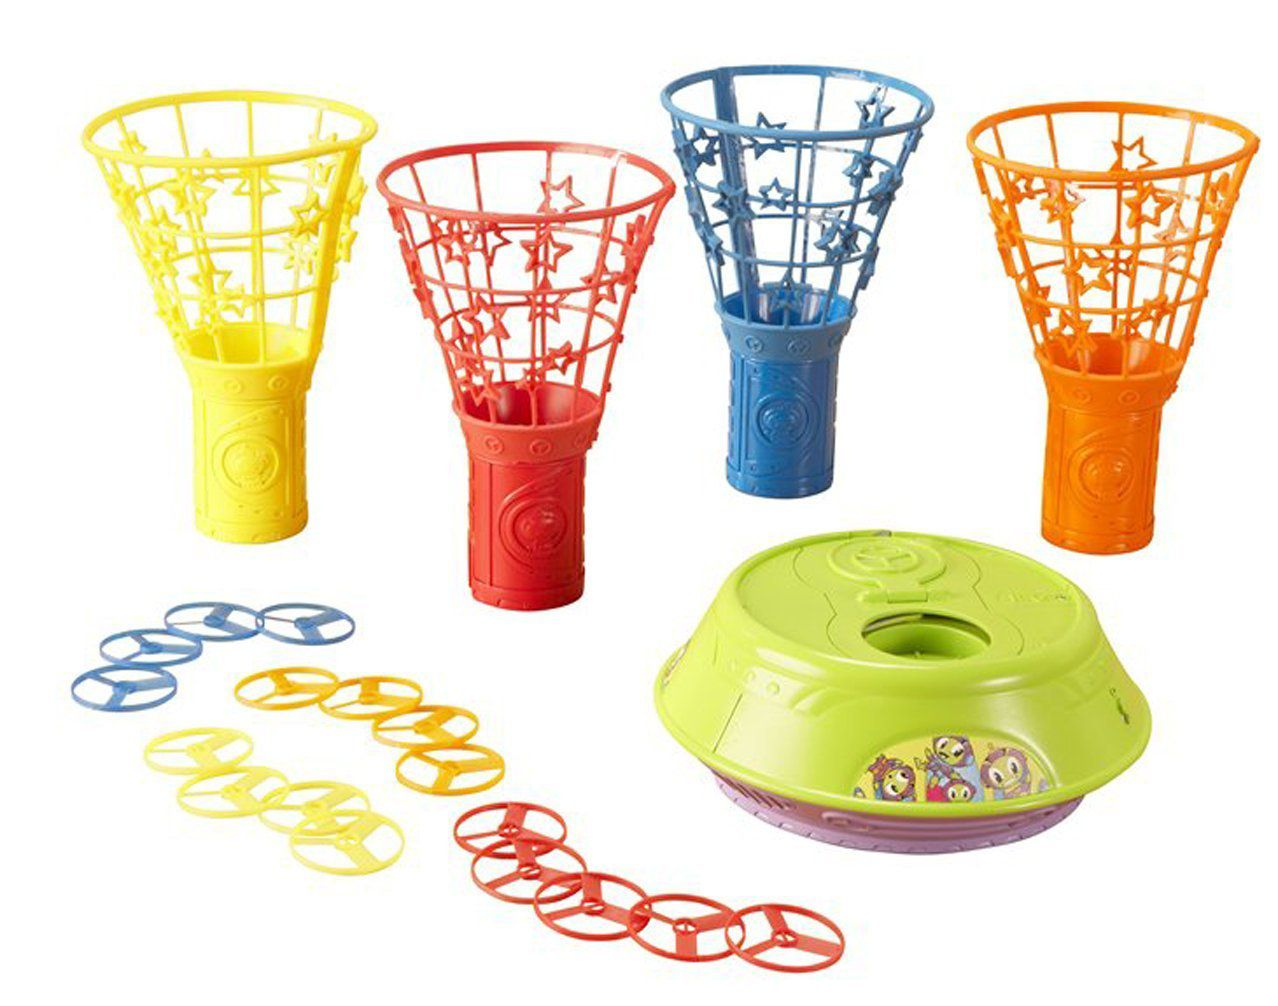 Active Toys For School Age Kids